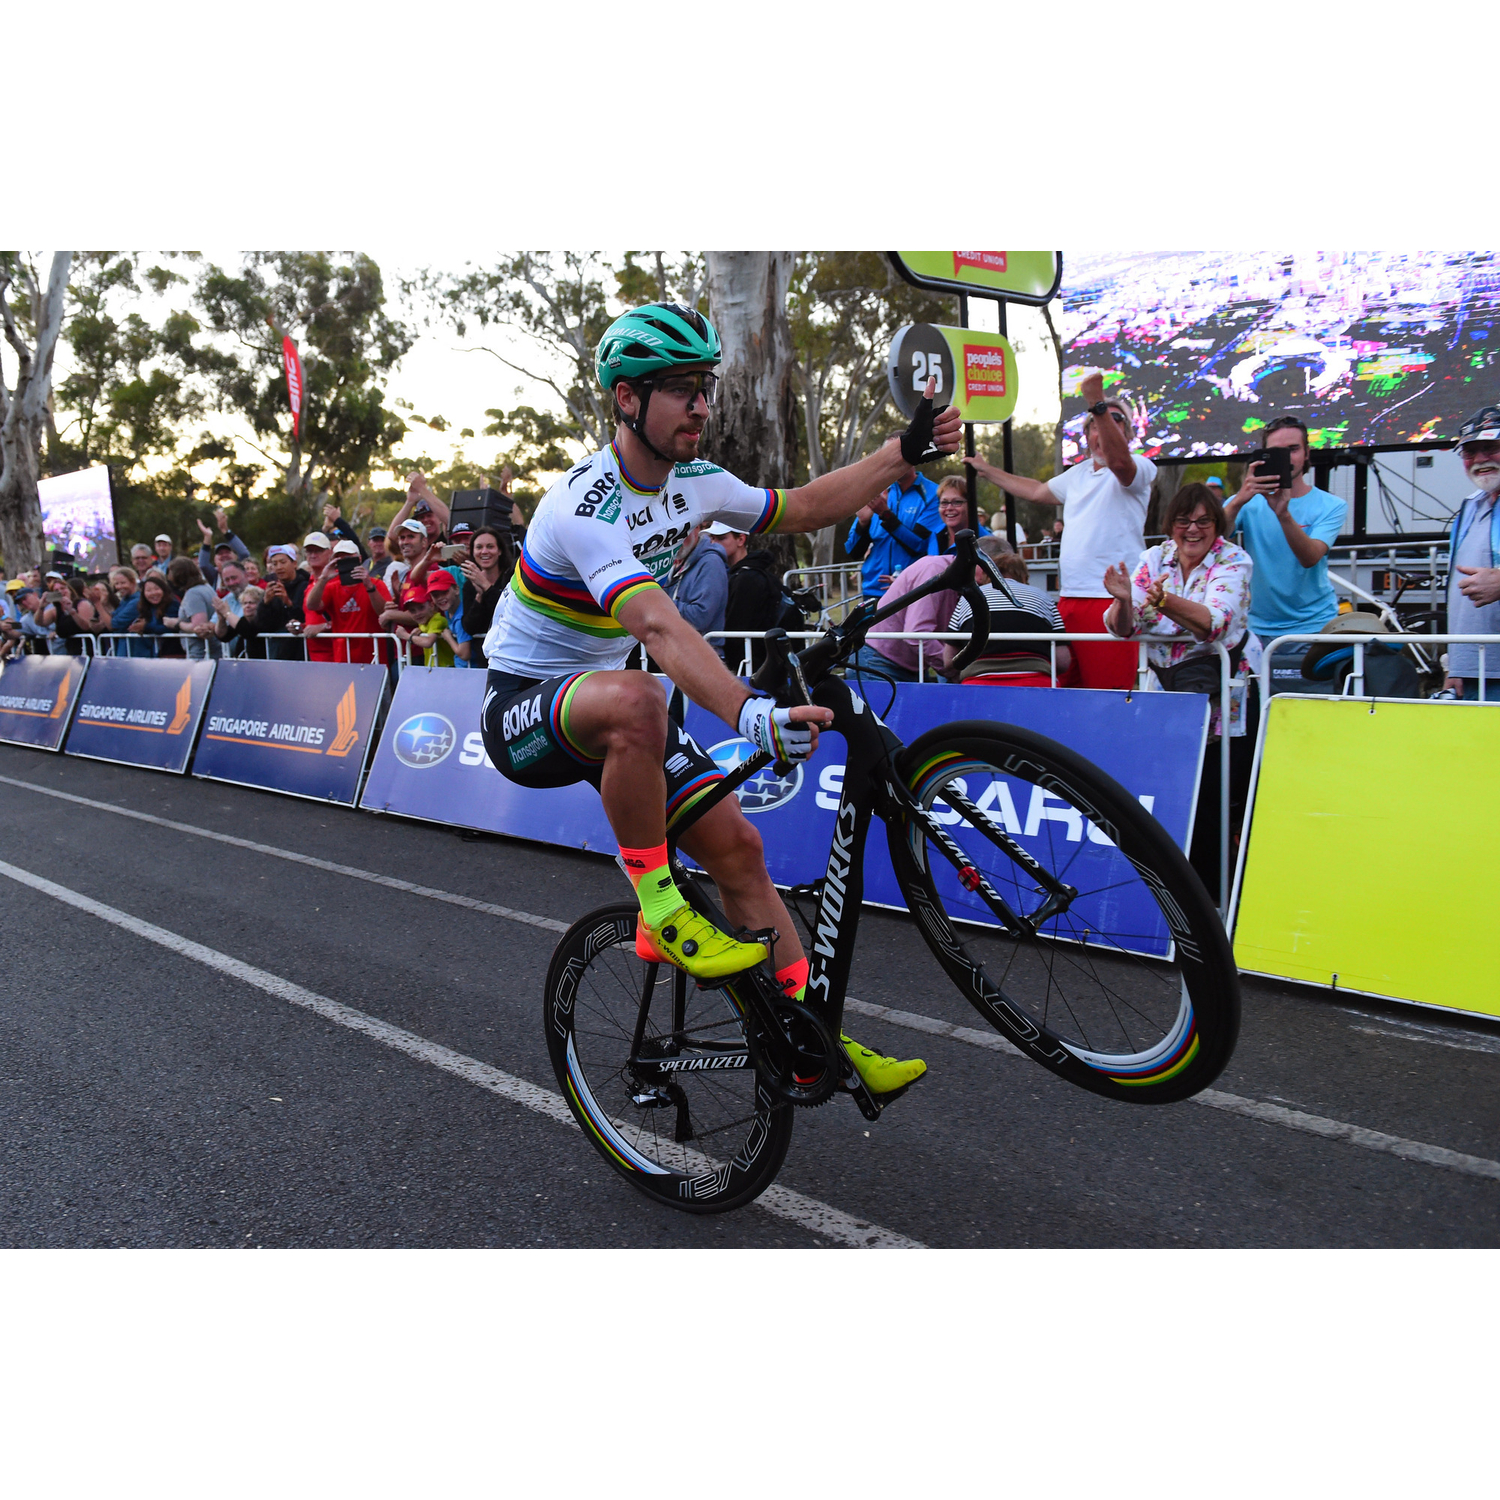 #58 Tour Down Under, Froome a Poprad - Home of Cycling